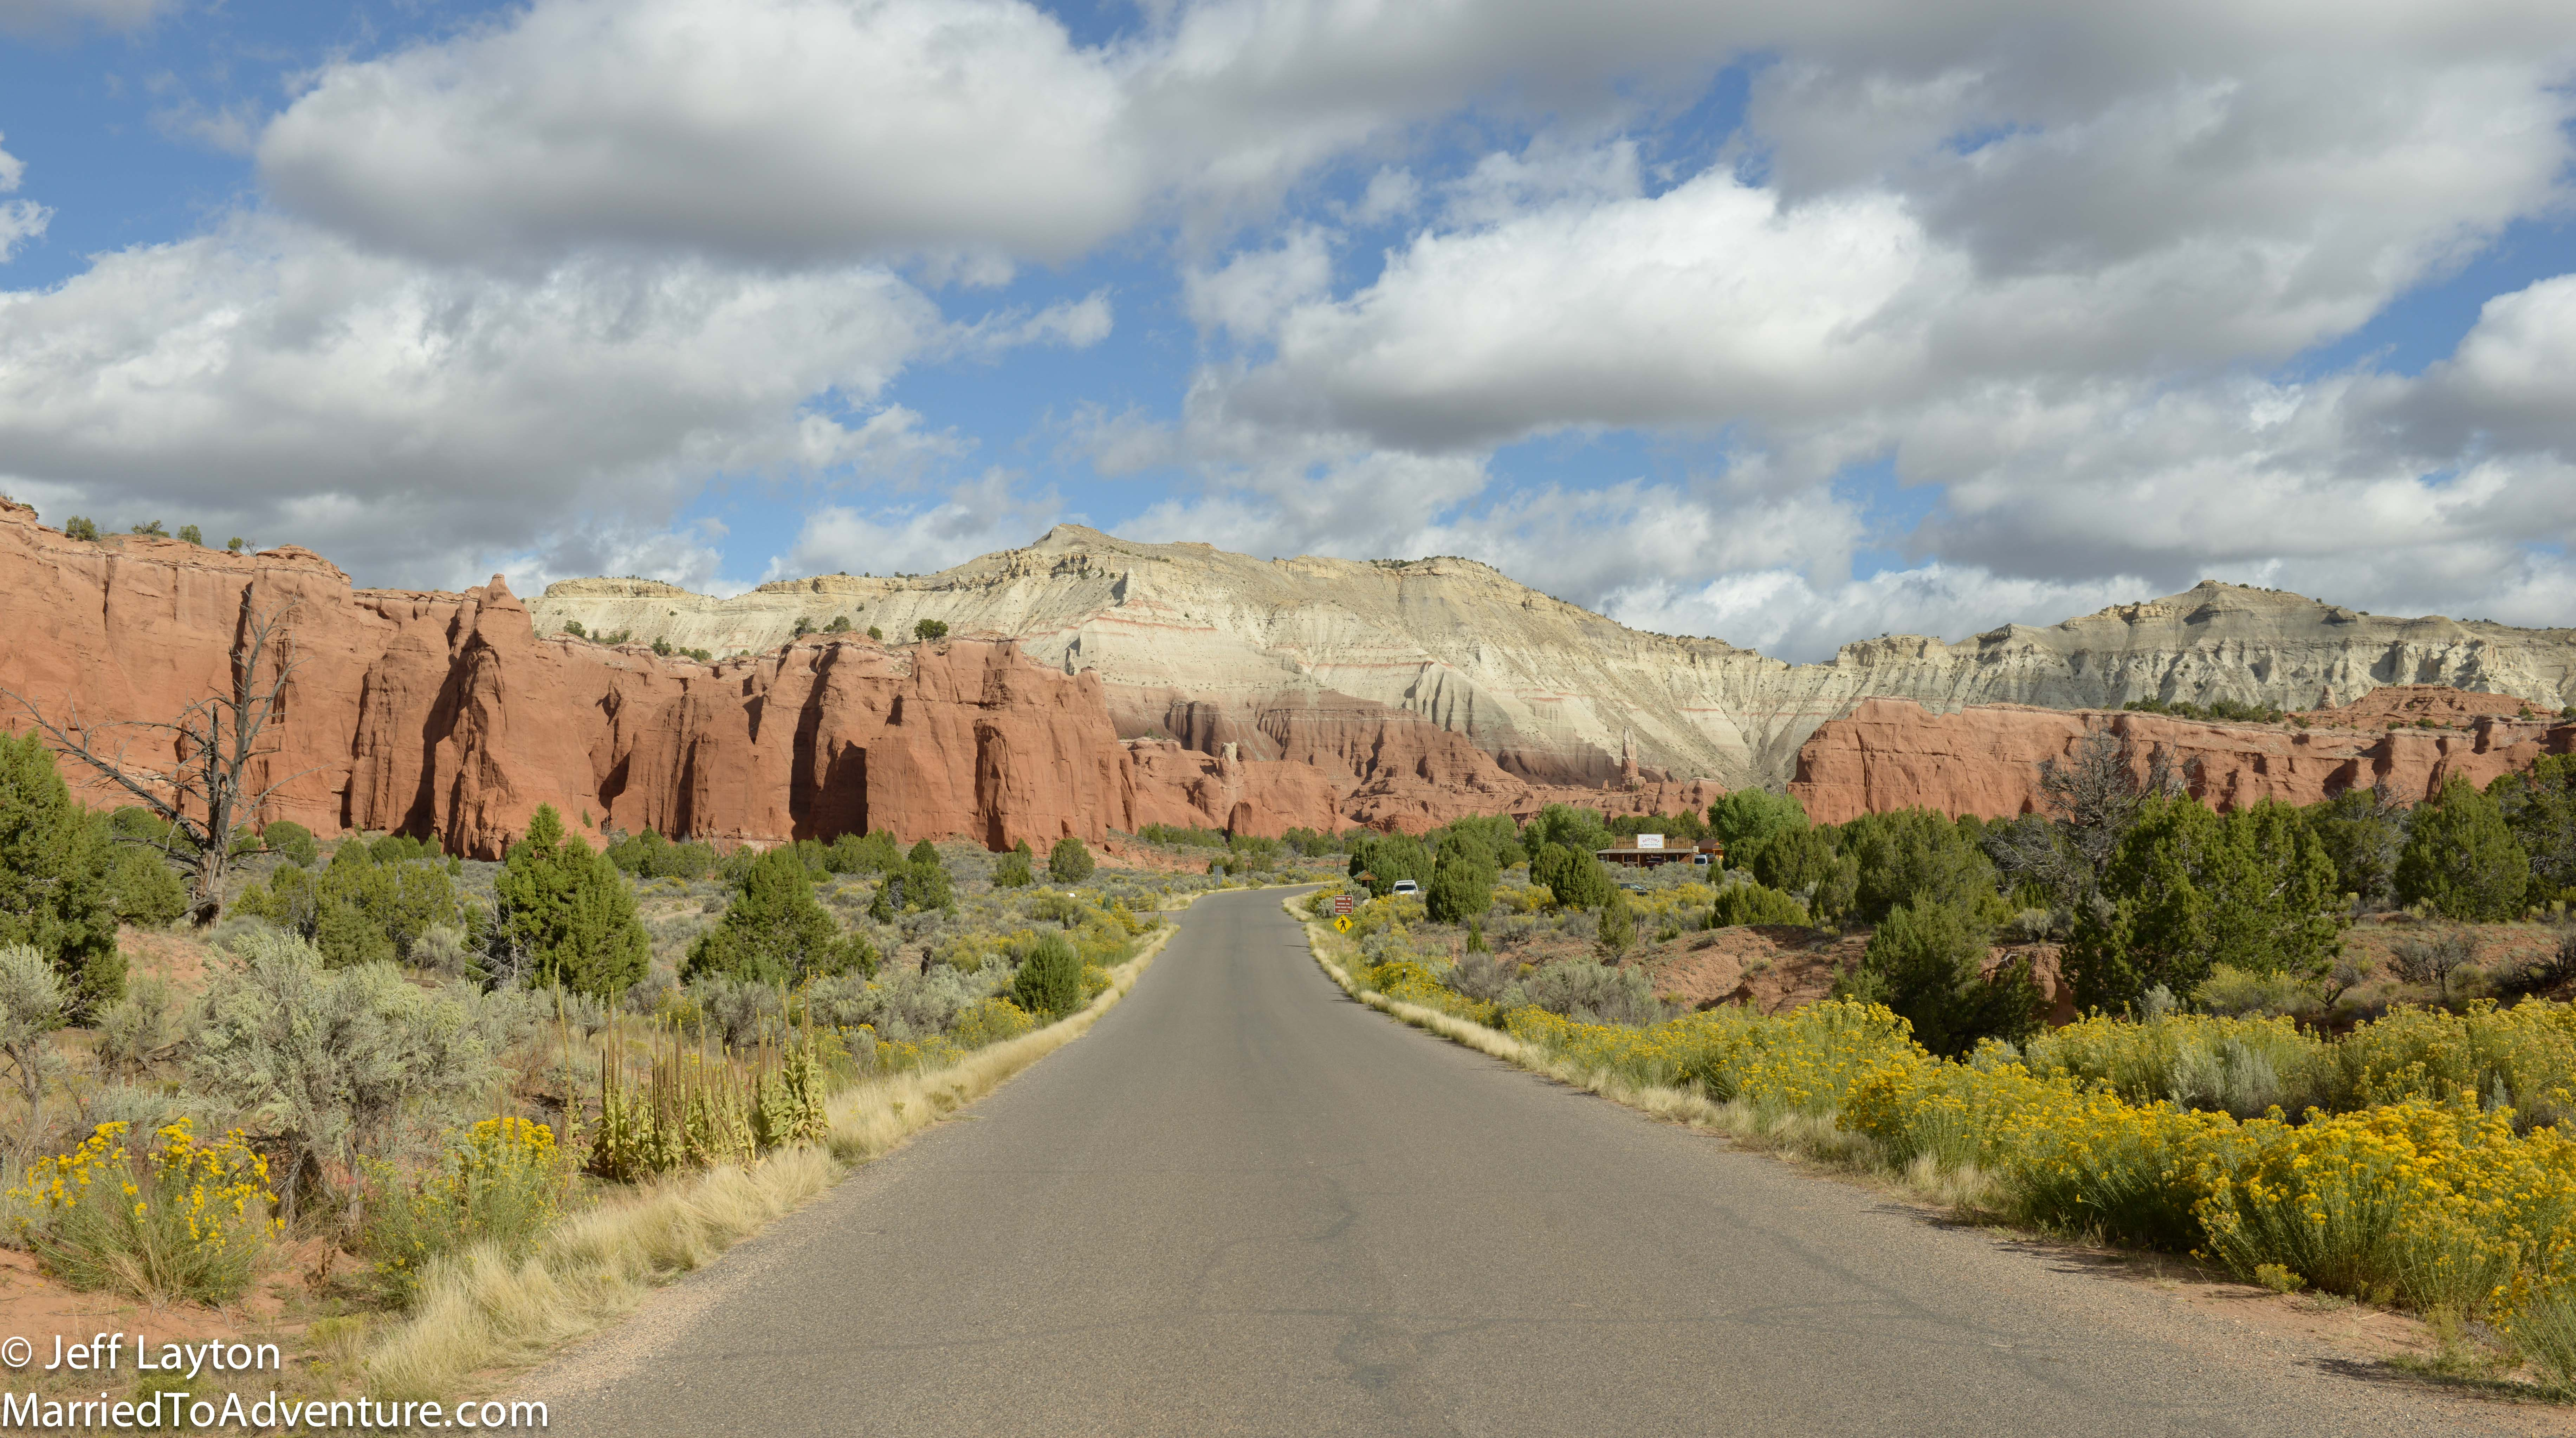 The entrance to Kodachrome Basin SP - one of Jeff's favorite camping places in the SW